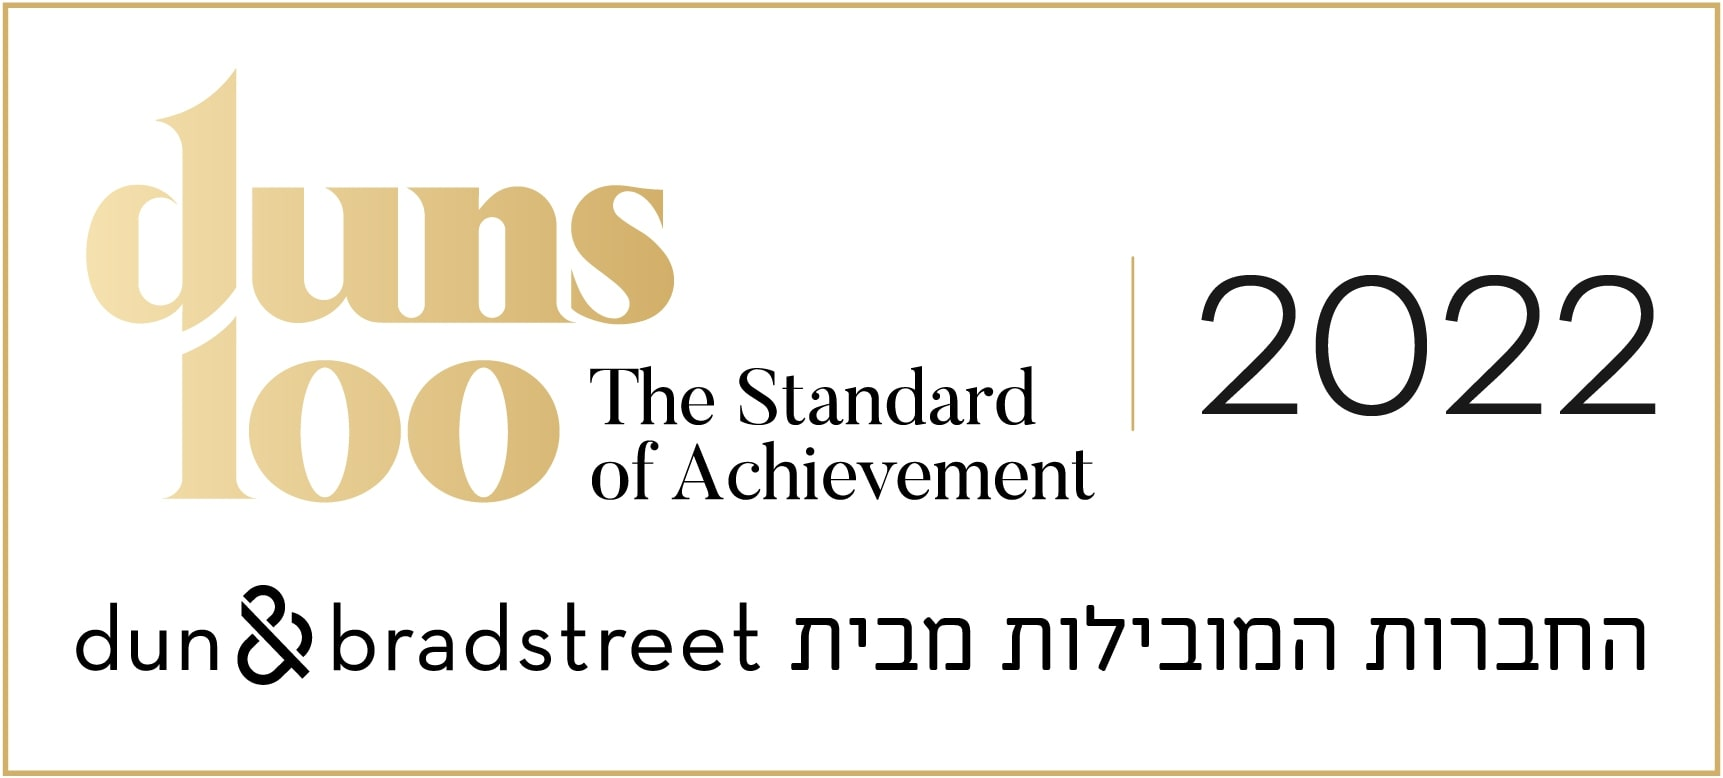 Globes Dun's 100 - Eliezri Intellectual Property, Patent Attorneys & Law Office